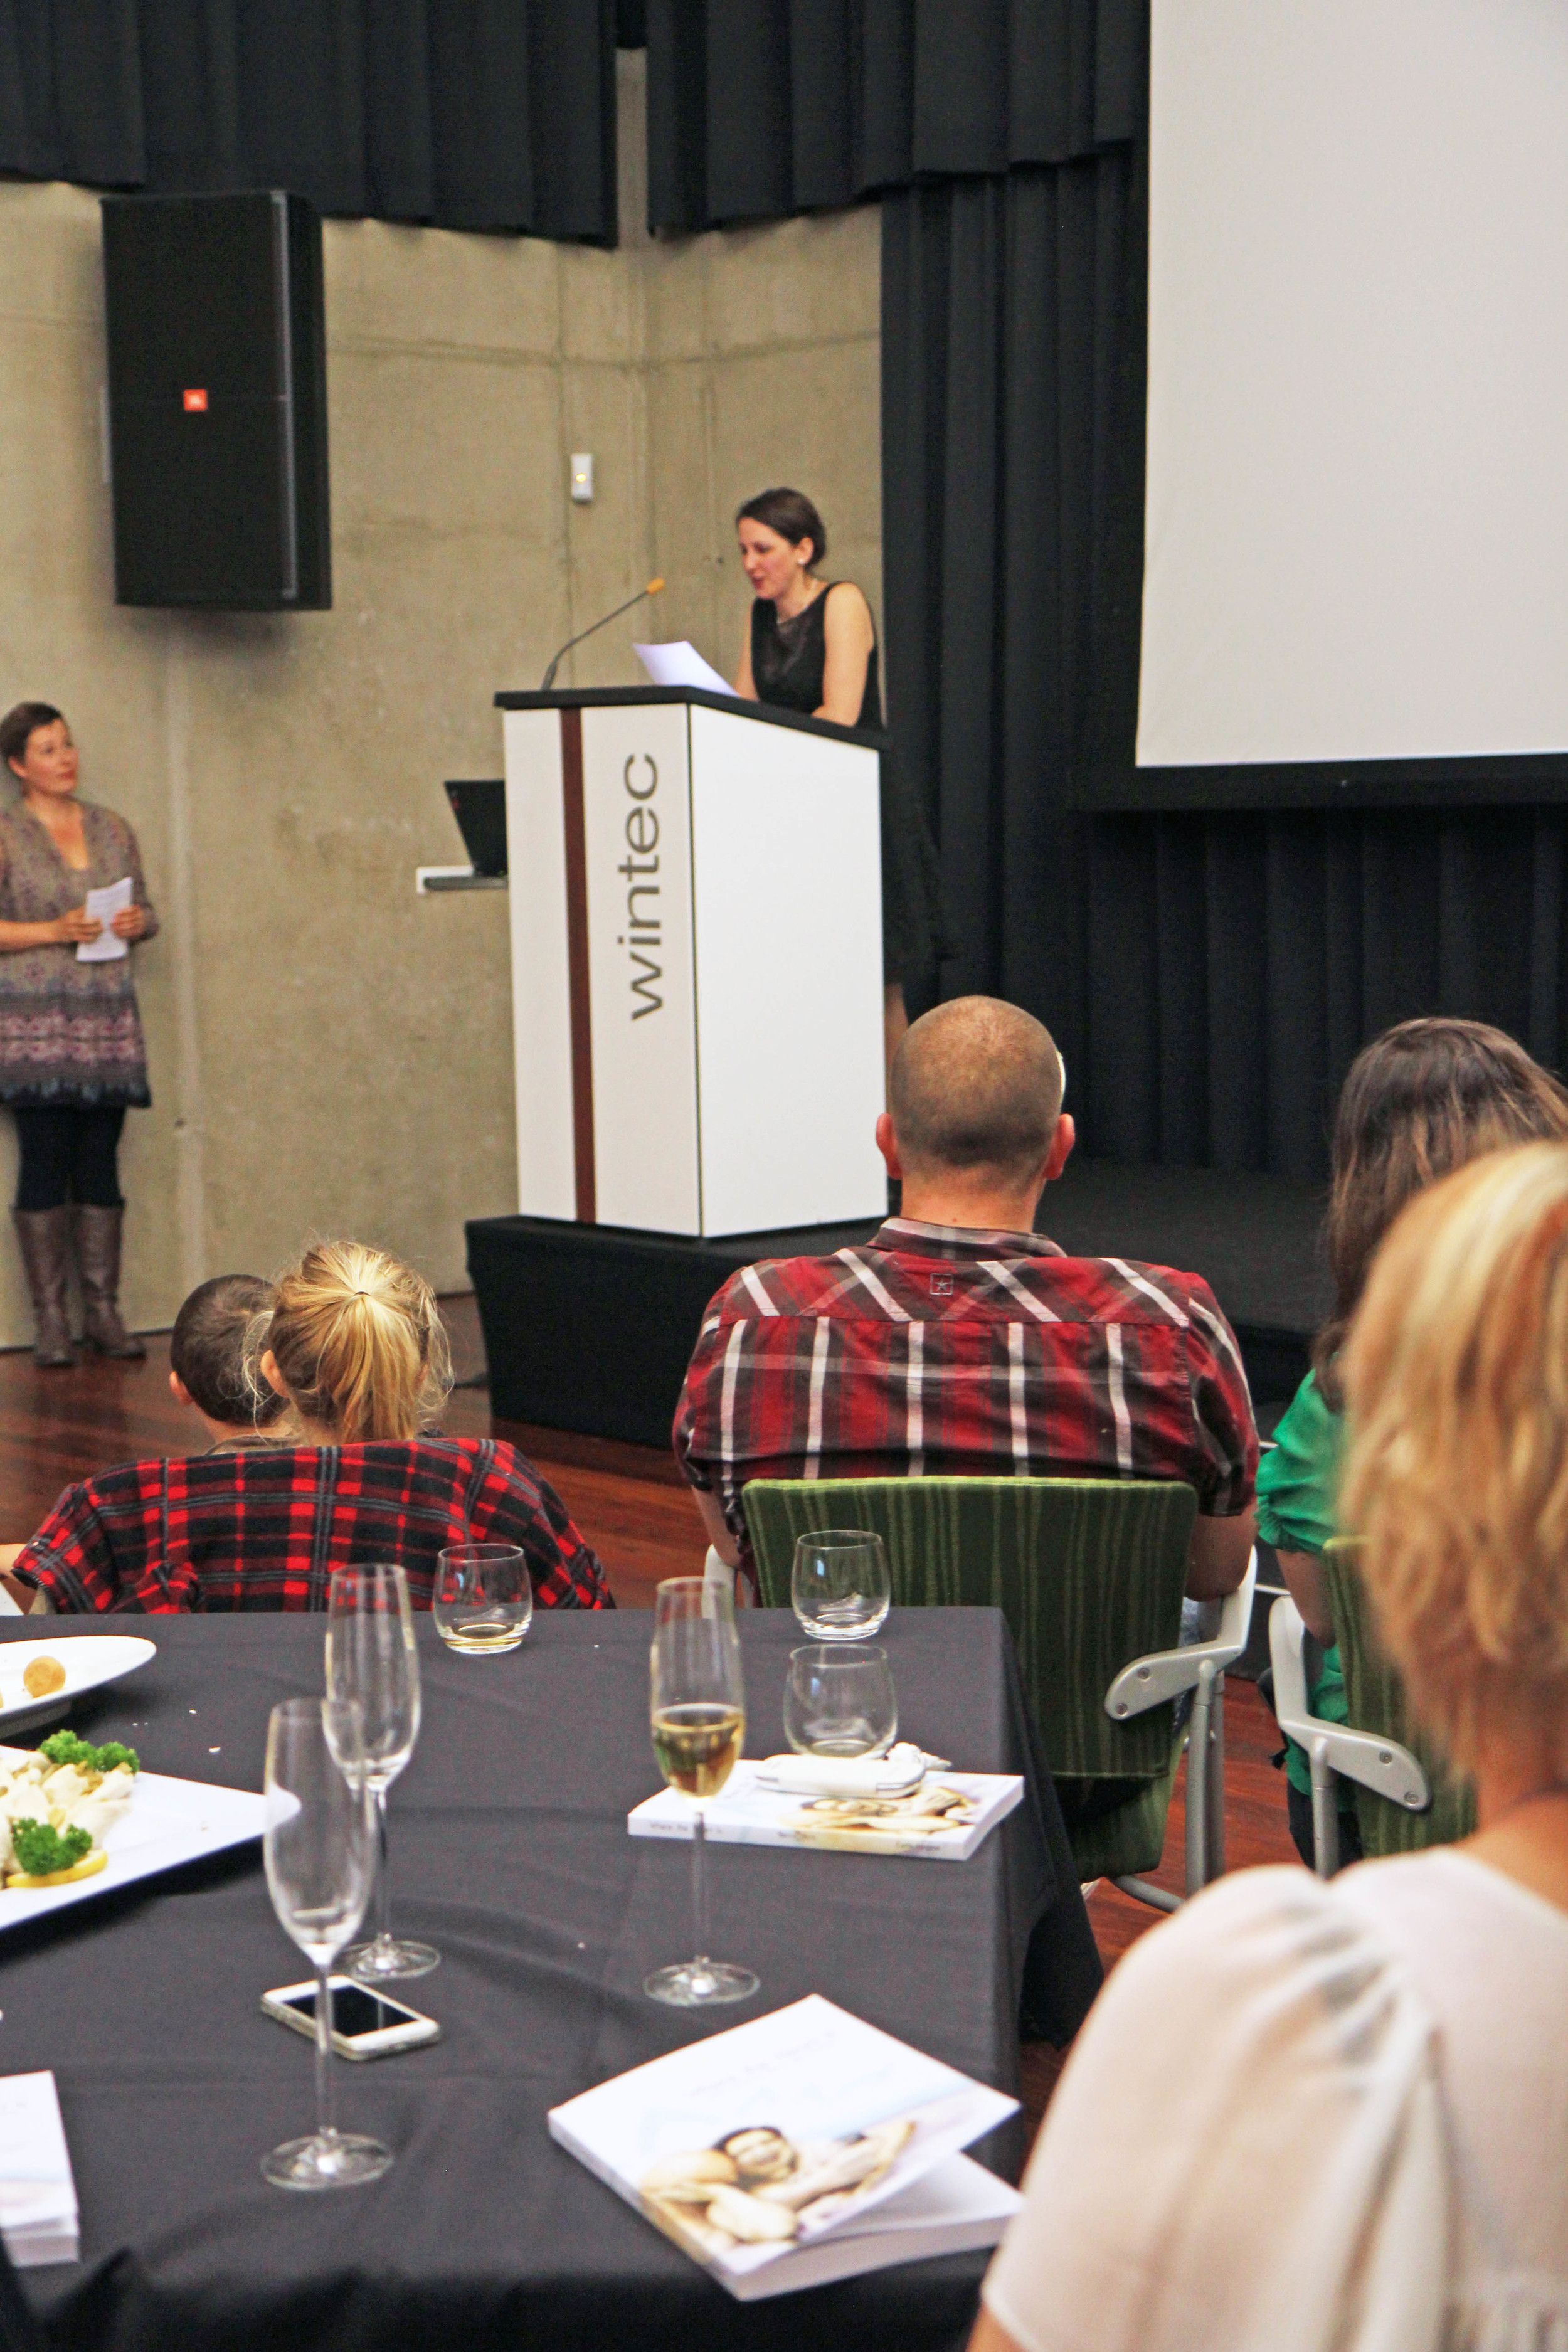 Me saying my speech. My amazing MC, Michelle, is to the left of the image.